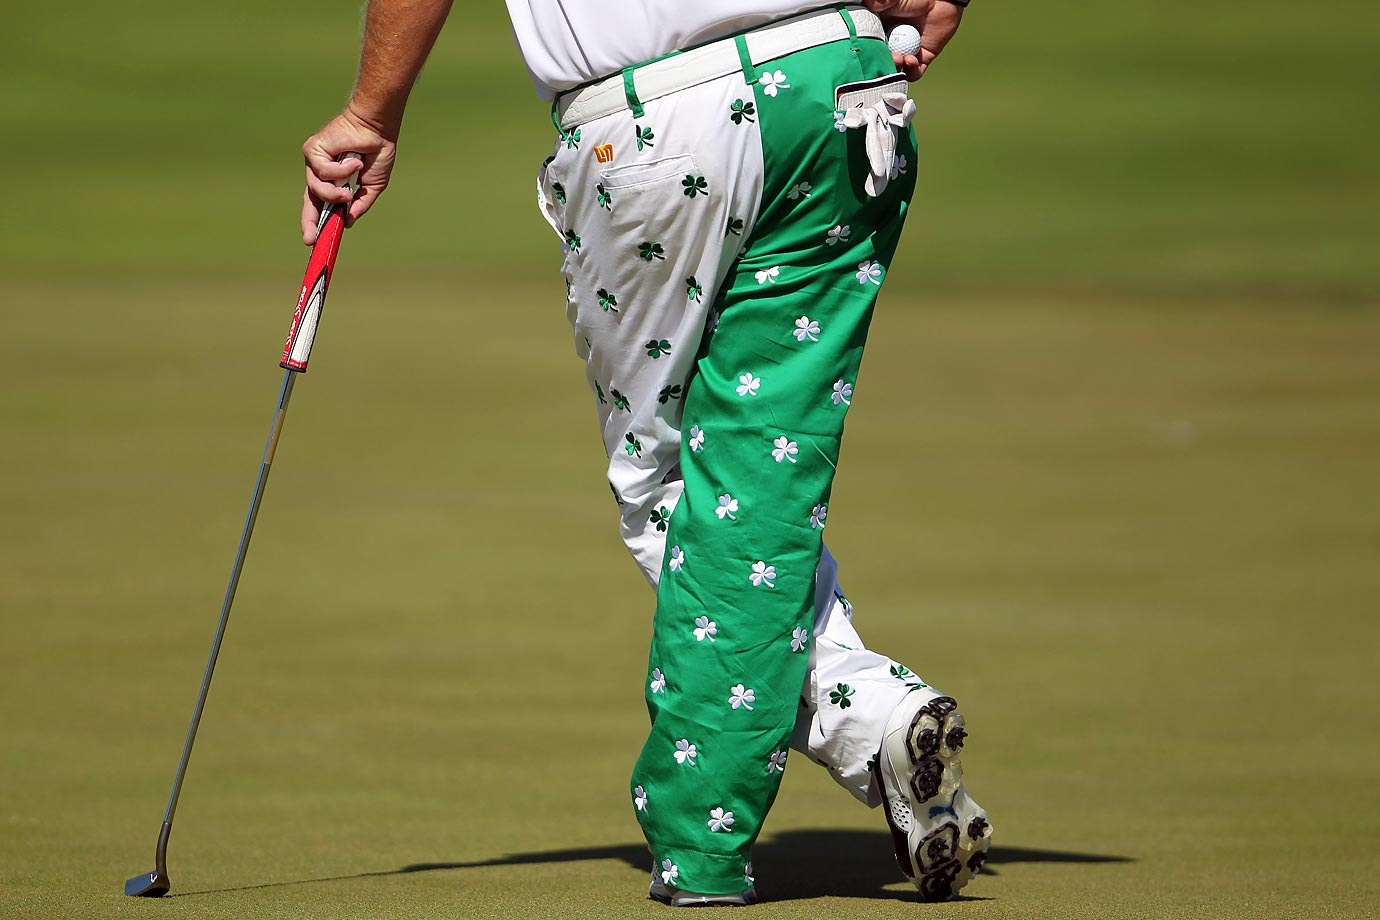 John Daly waits for his turn to putt on the 10th green at the Puerto Rico Open.